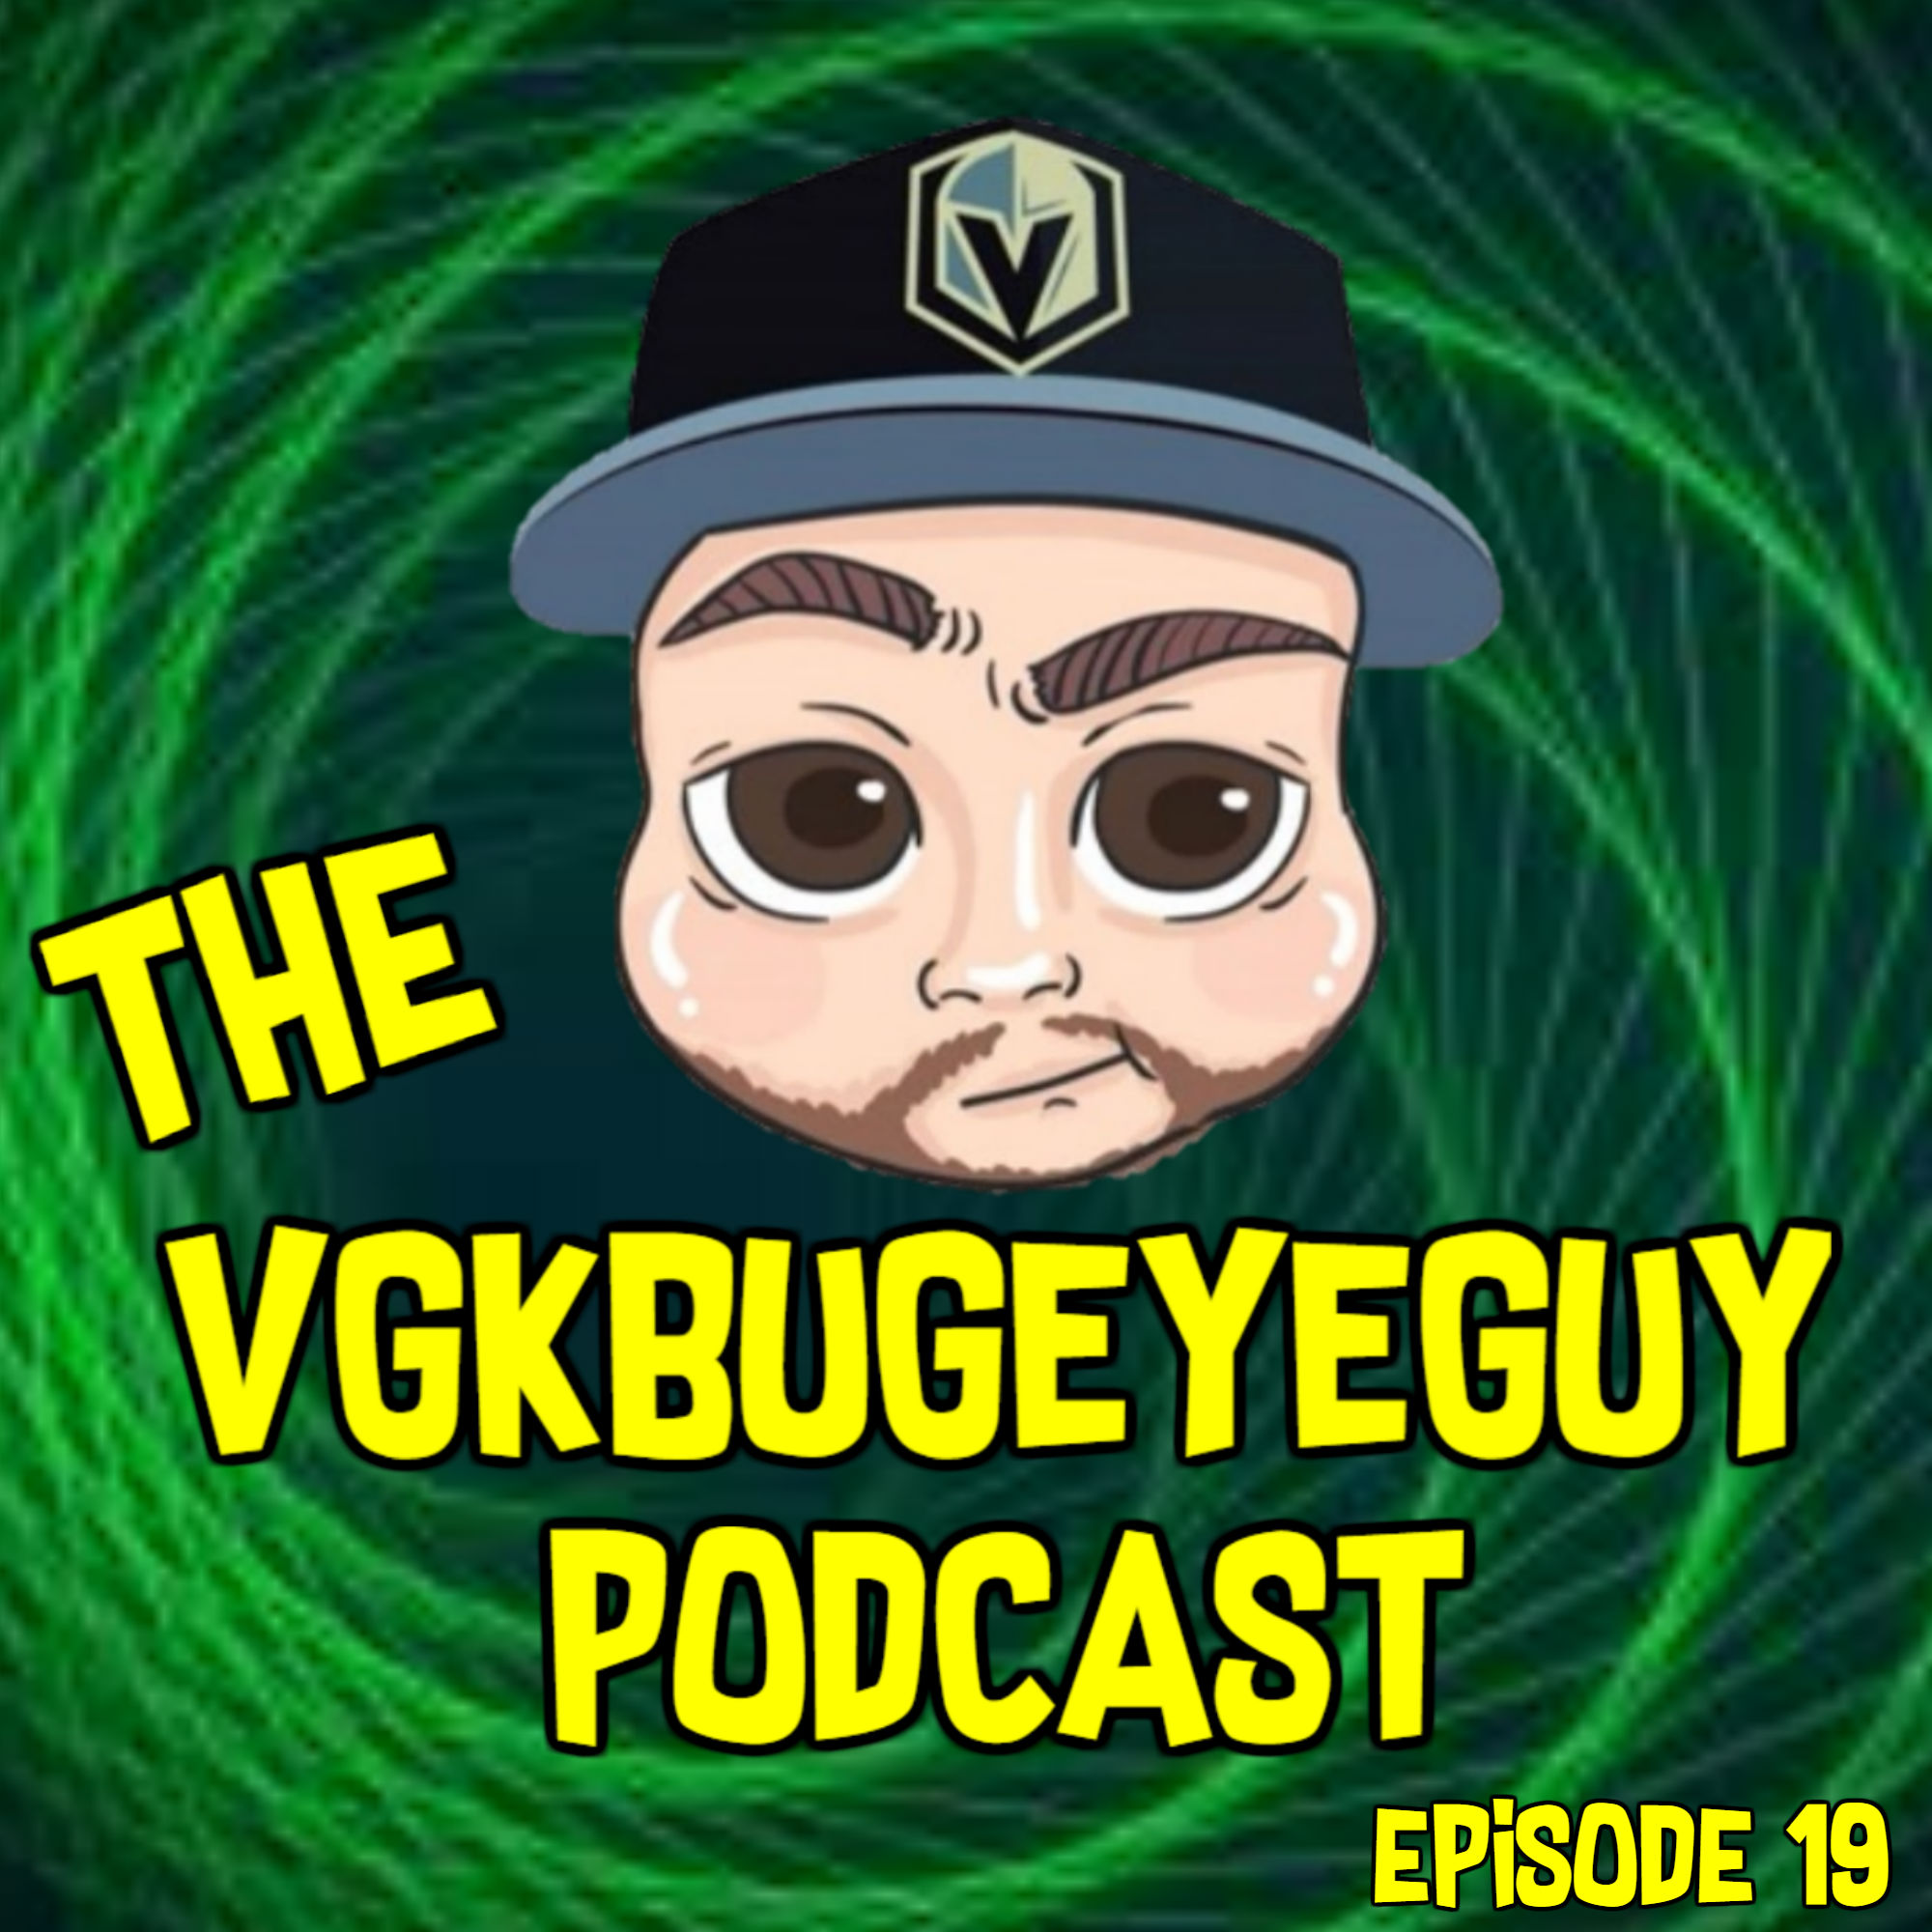 The VGKbugeyeGuy Podcast Episode 19